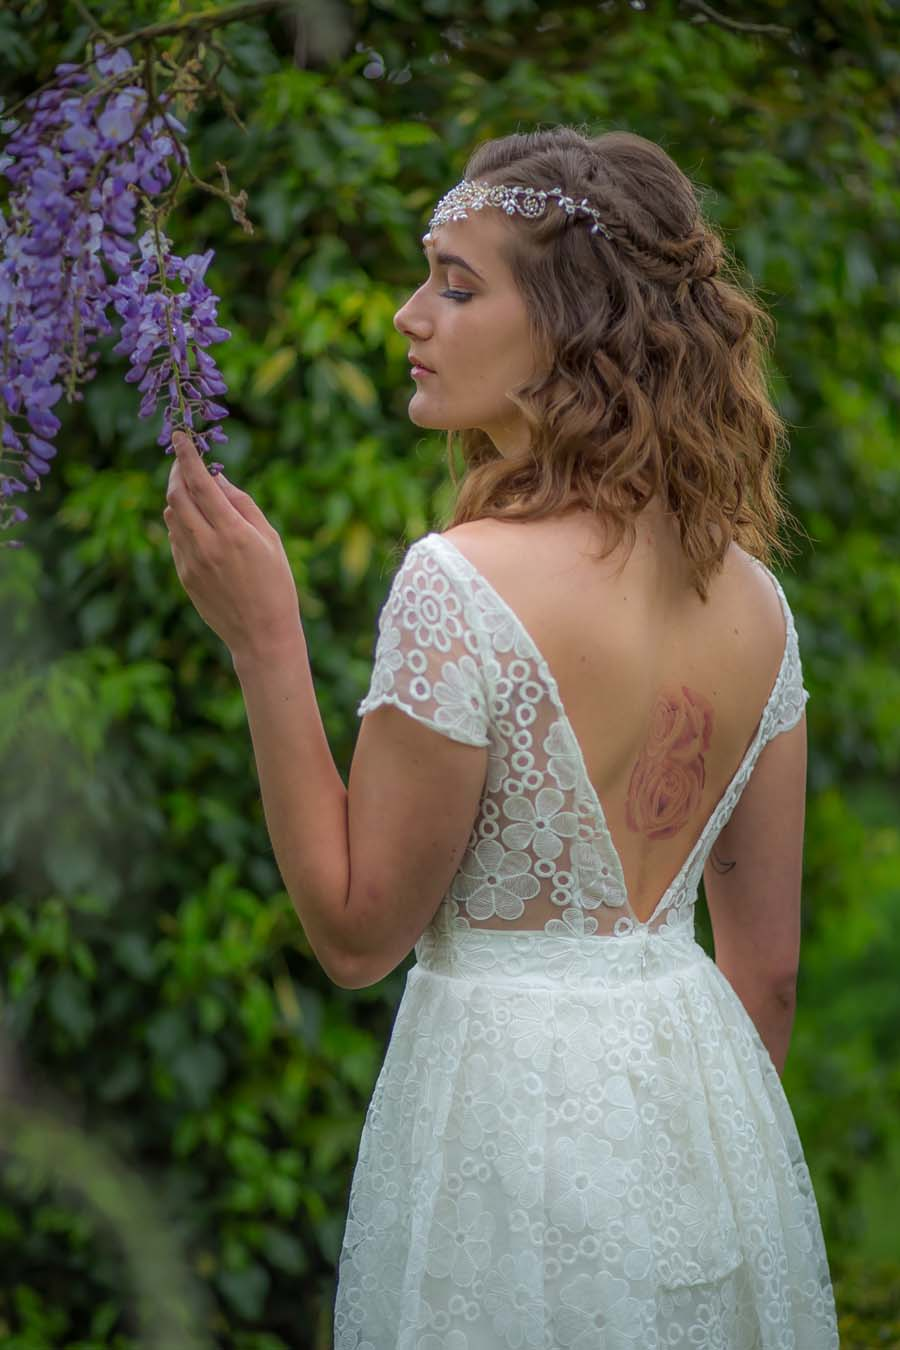 Curious & Colourful! A 'Through the Looking Glass' Bridal Shoot